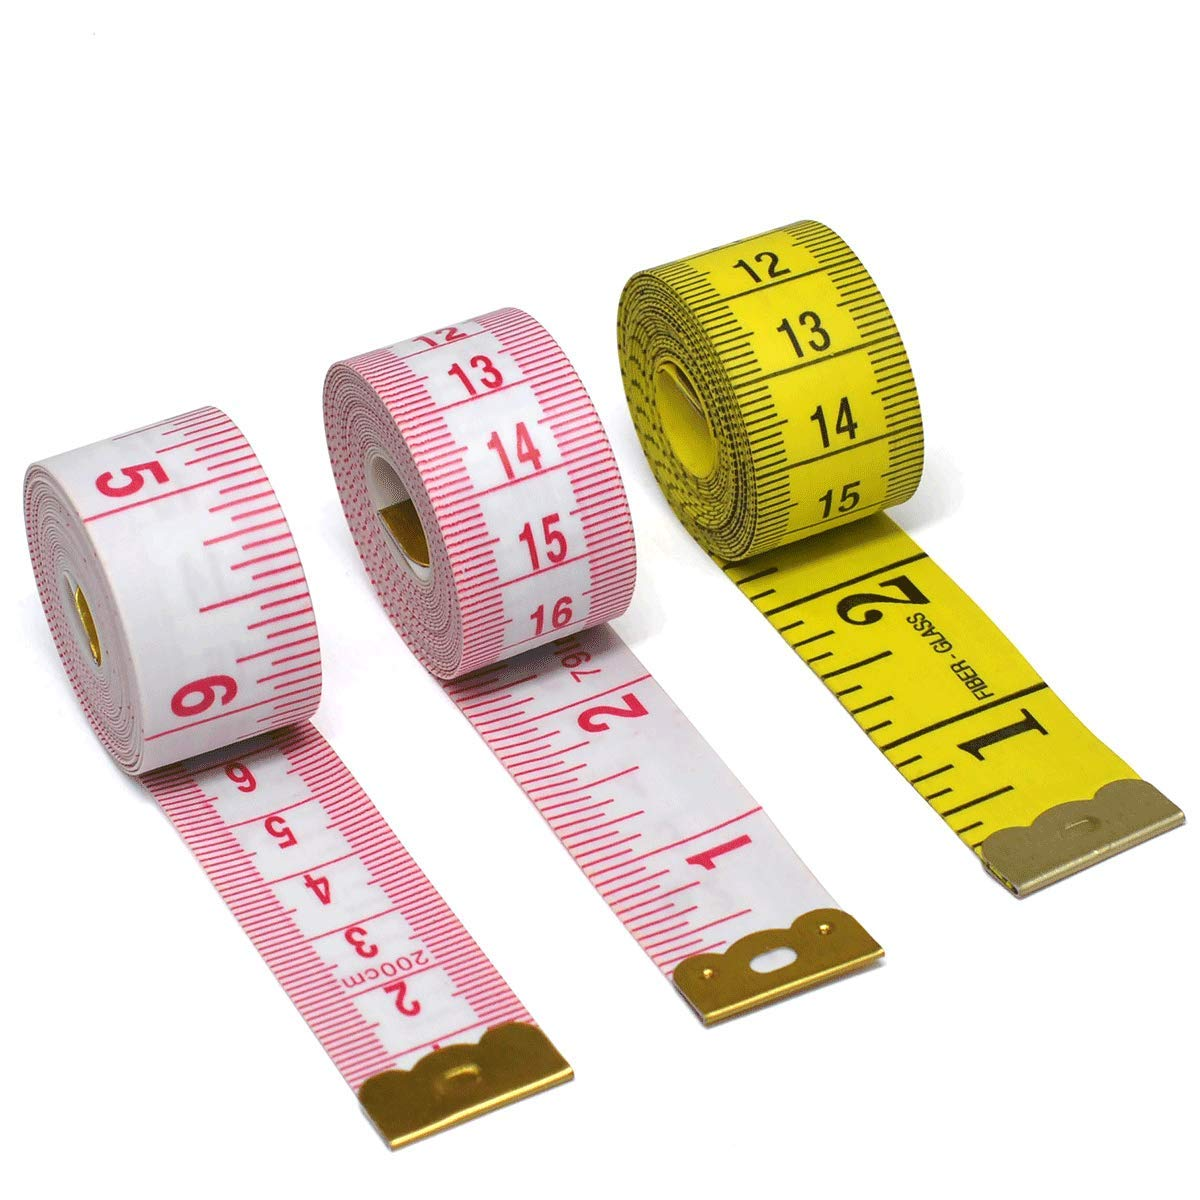 Soft Cloth Tape Measure Body, Tailor Plastic Measuring Tape for Sewing 3 Pack (79 inch x 2Pcs, 60 inch x 1Pcs, 2CM Wide) Aootech Aootech-6-14